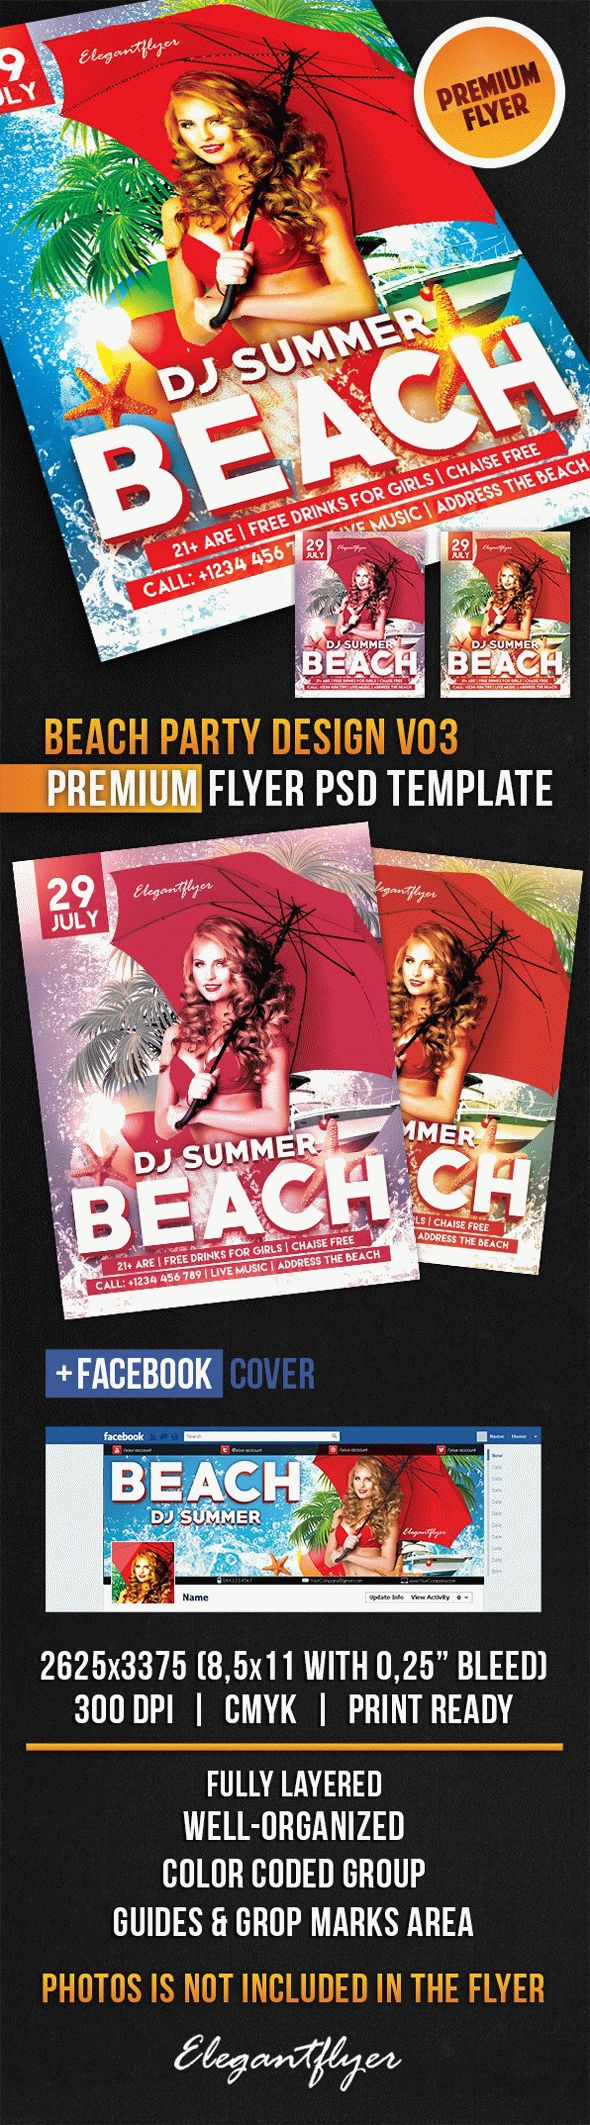 Beach Party Design V03 – Flyer PSD Template